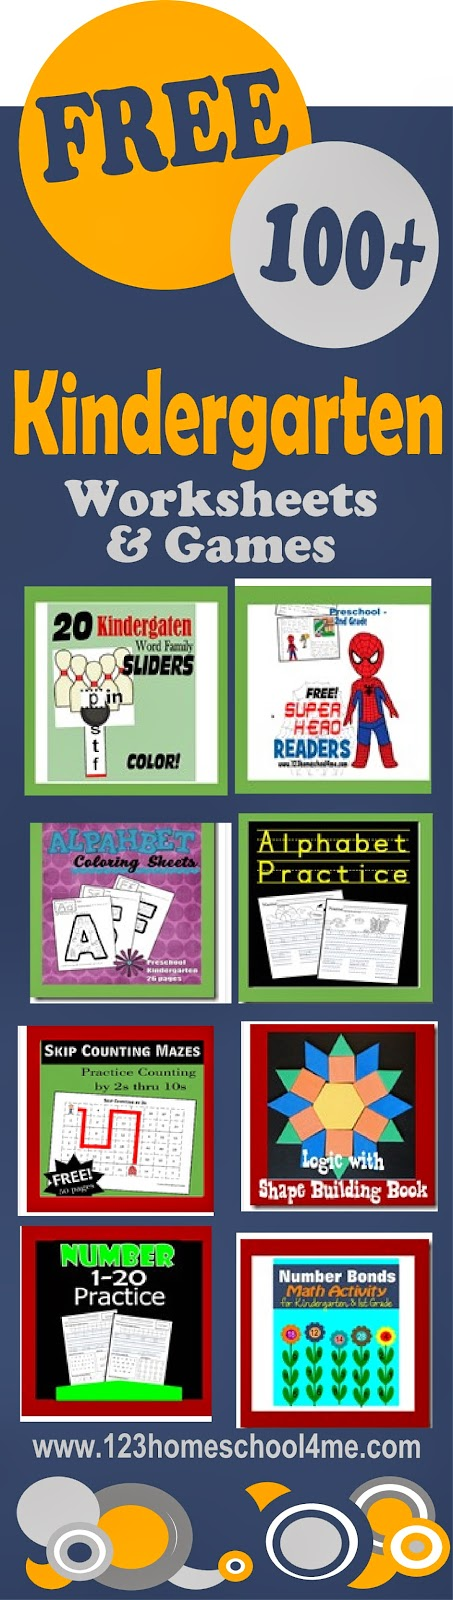 Over 100 FREE Kindergarten worksheets, games, and units #kindergarten #homeschooling